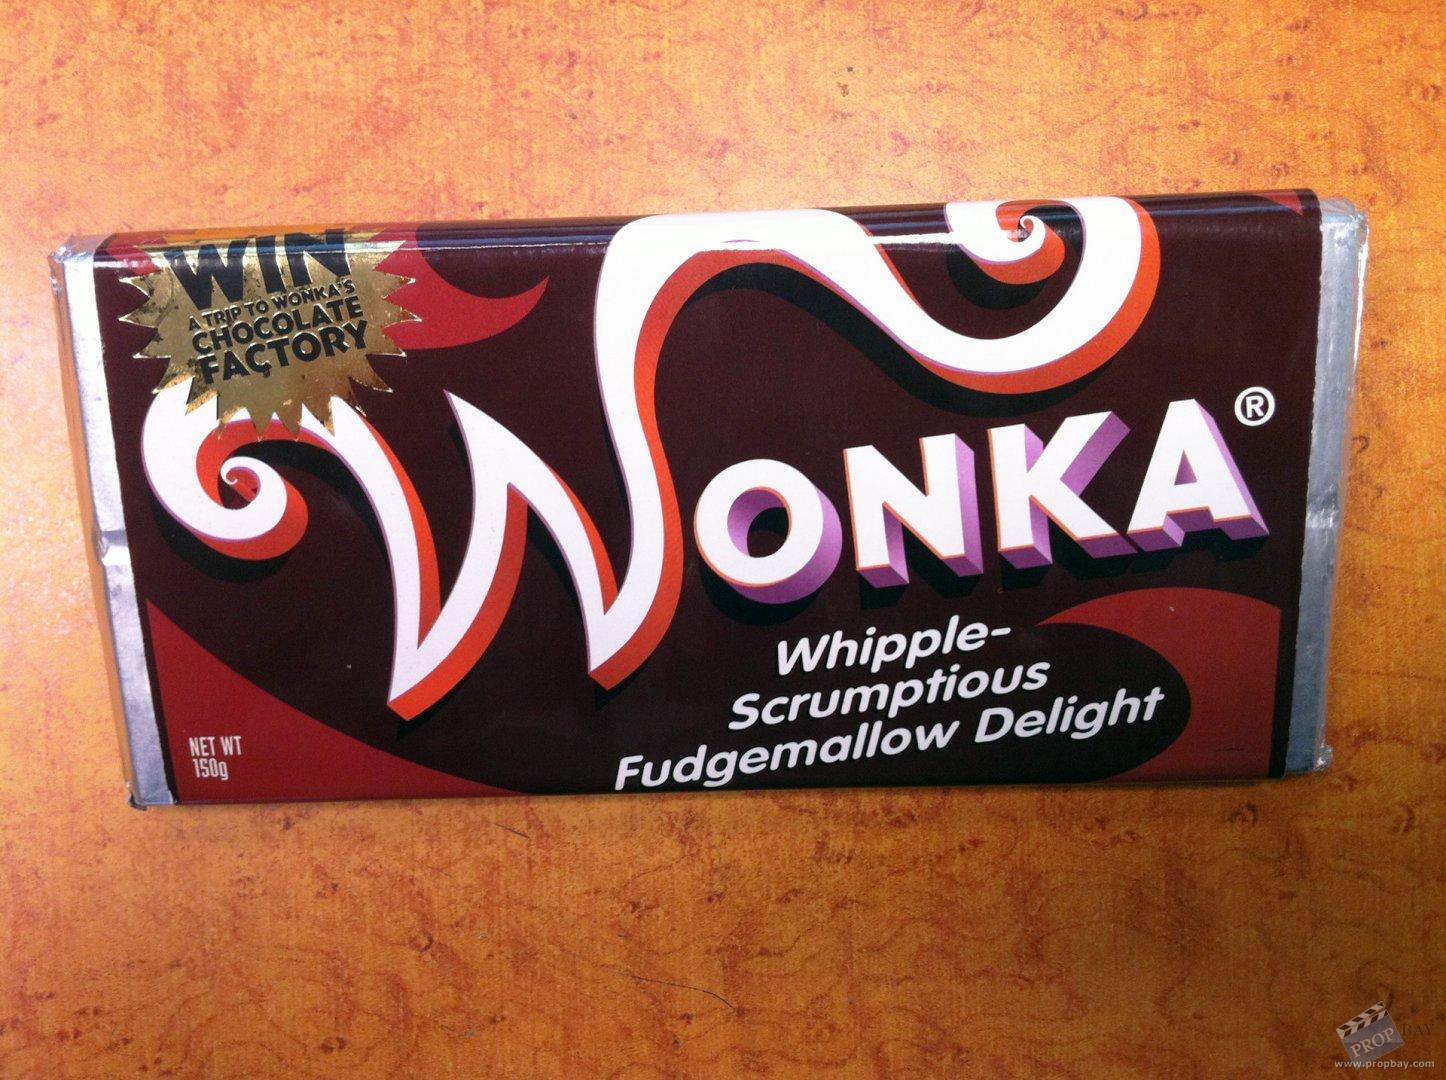 Wonka's 'Whipple-Scrumptious Fudgemallow Delight' Hero ...